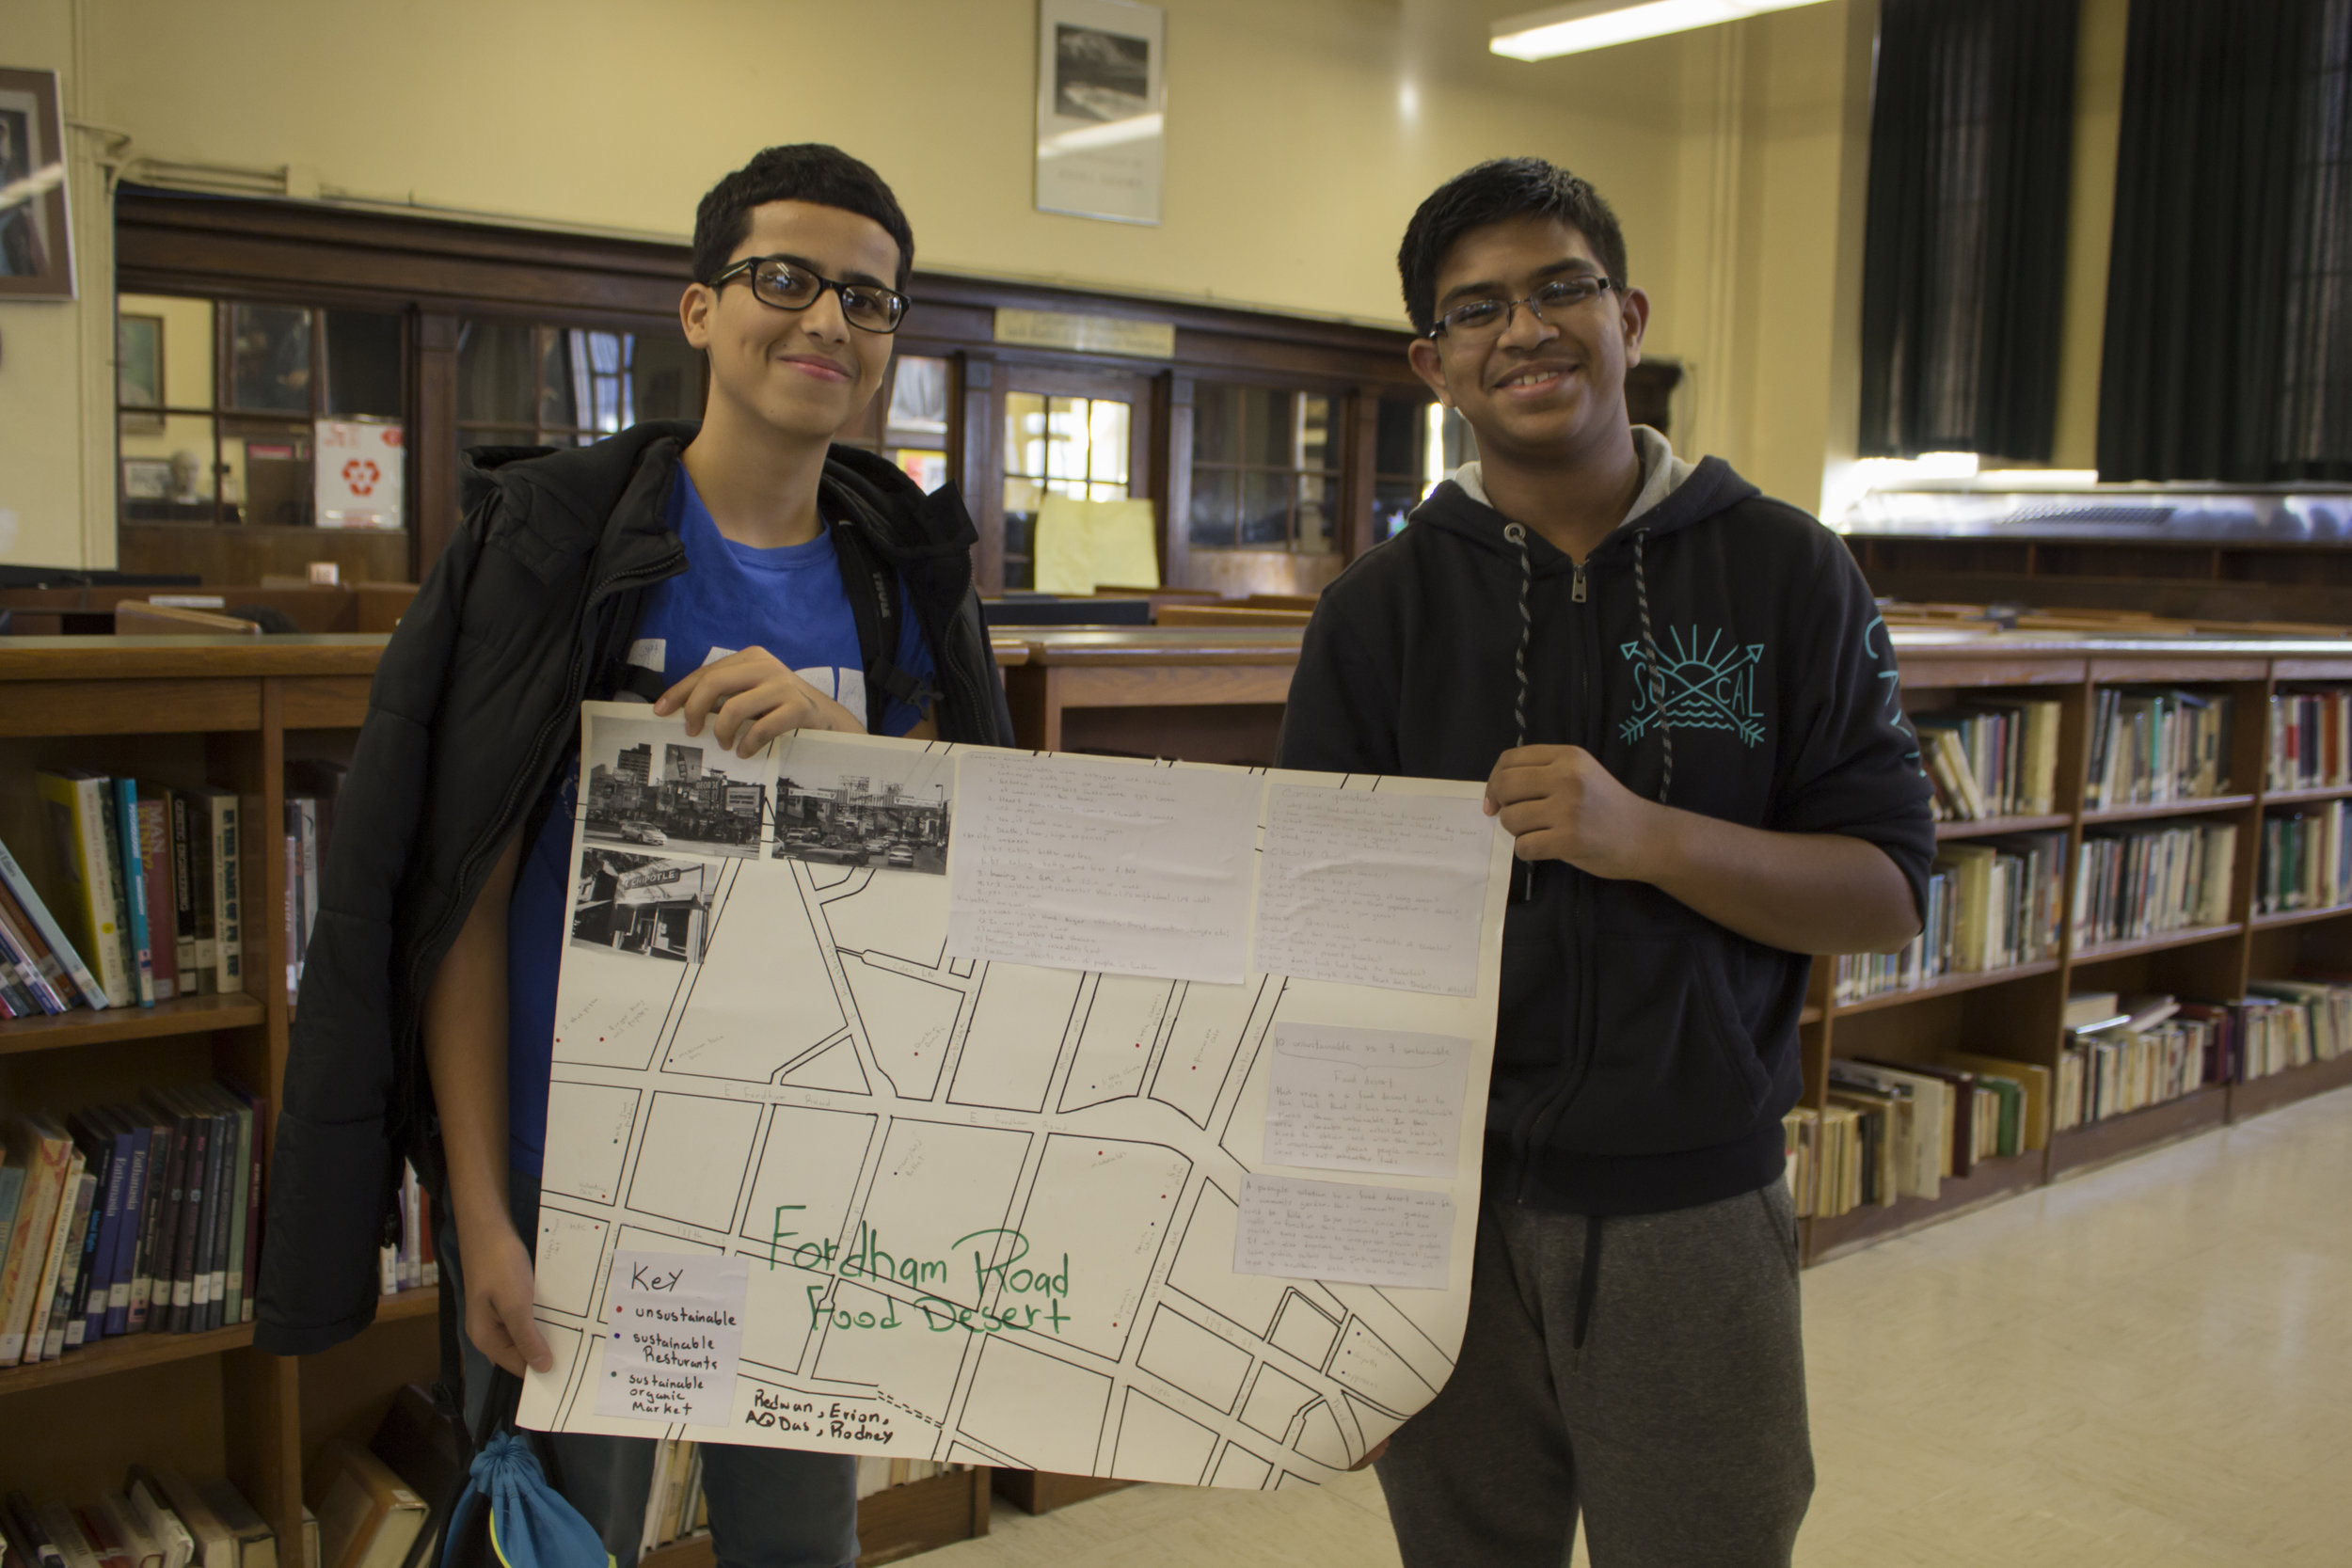 This group identified Fordham Road in the Bronx to be lacking in sustainable food resources, and identified a space where they think a community garden should be established.